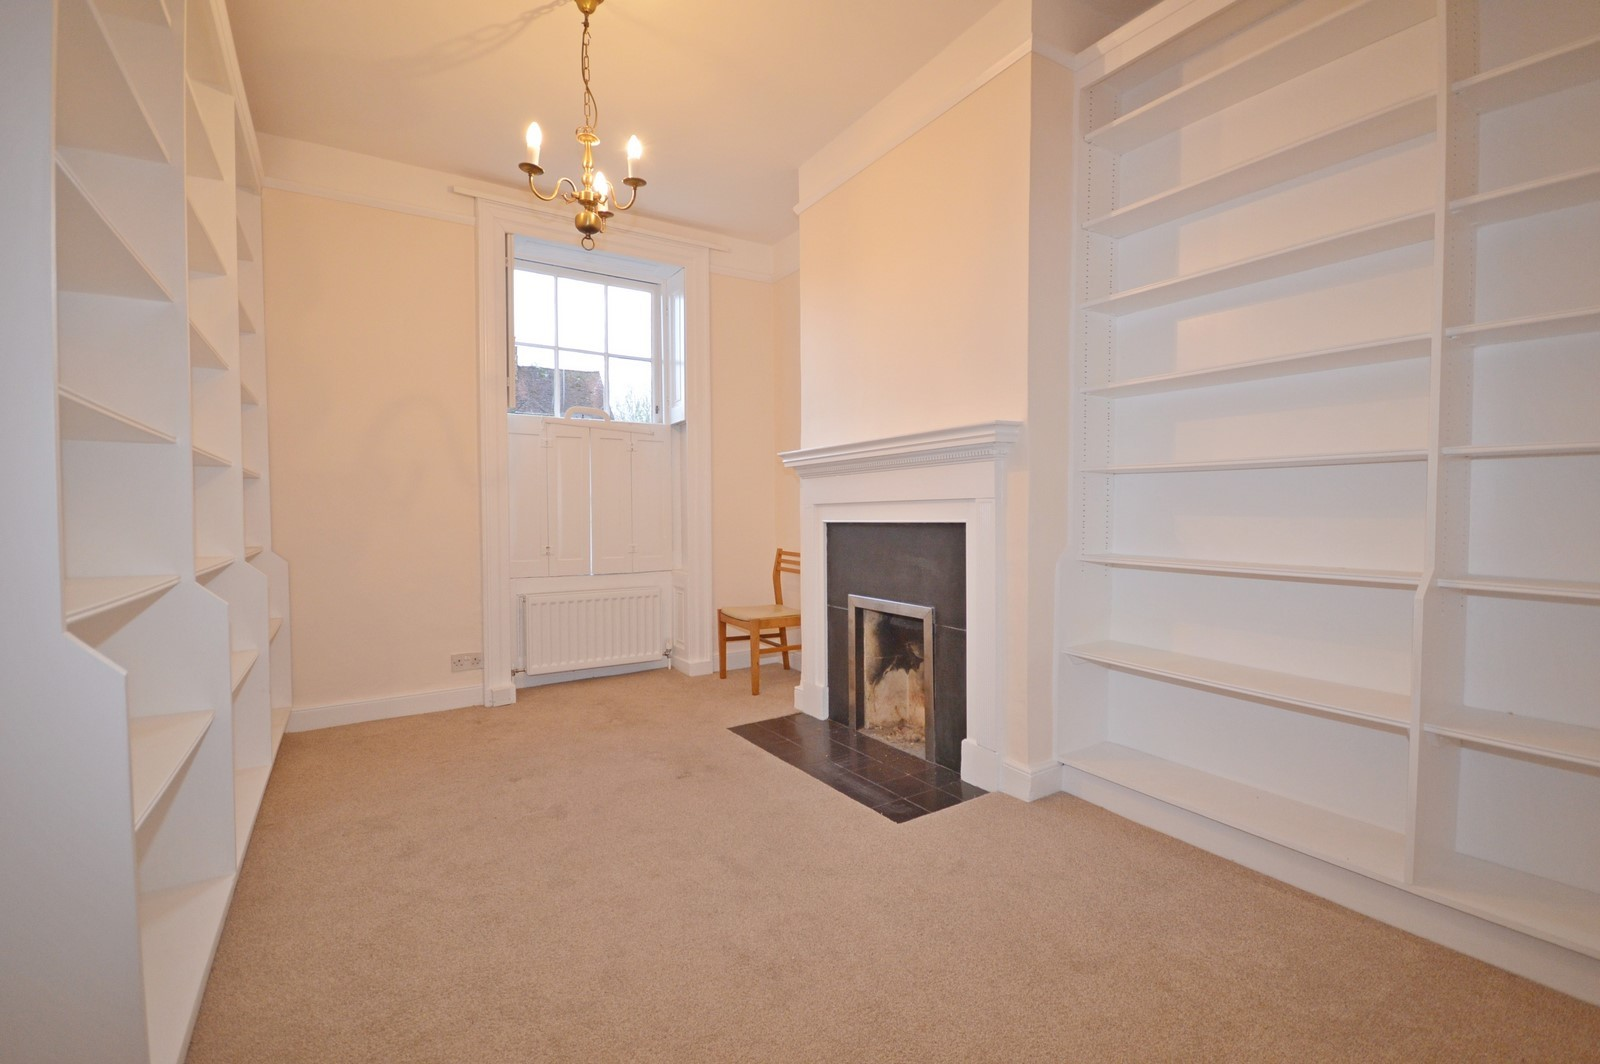 Library House to rent in Chichester City Centre